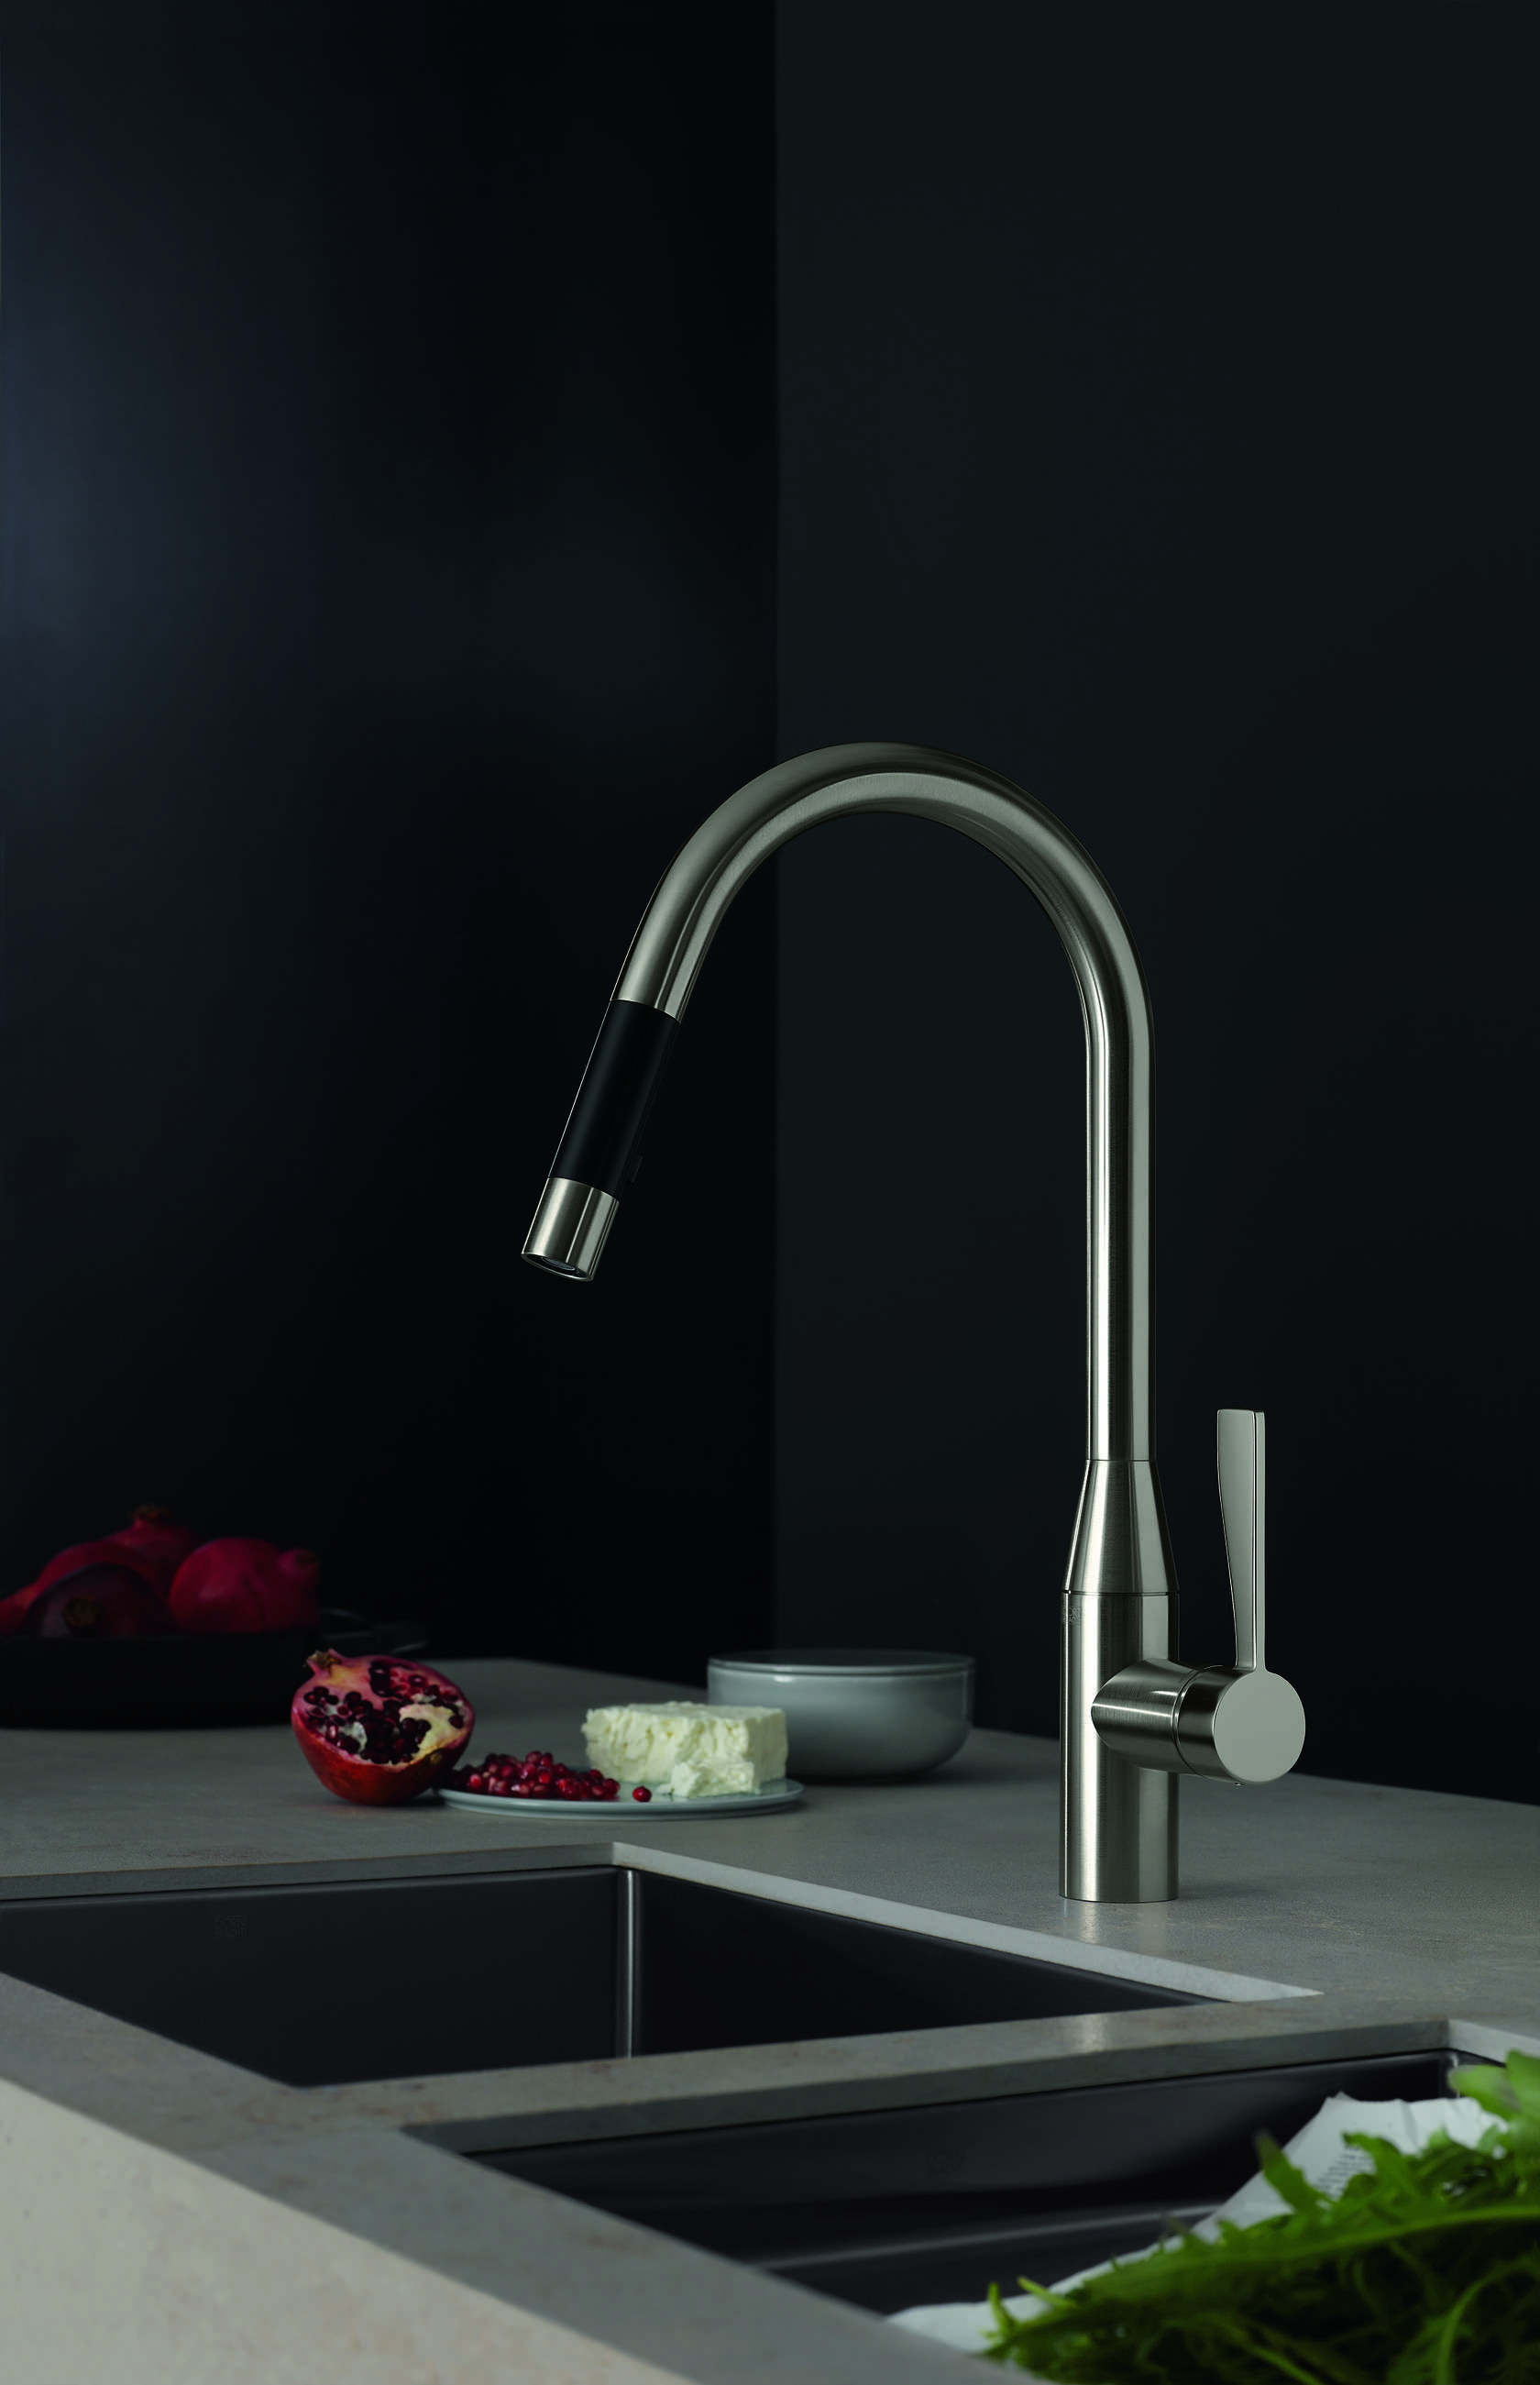 The new pulldown kitchen faucets by Dornbracht from the Sync and ...